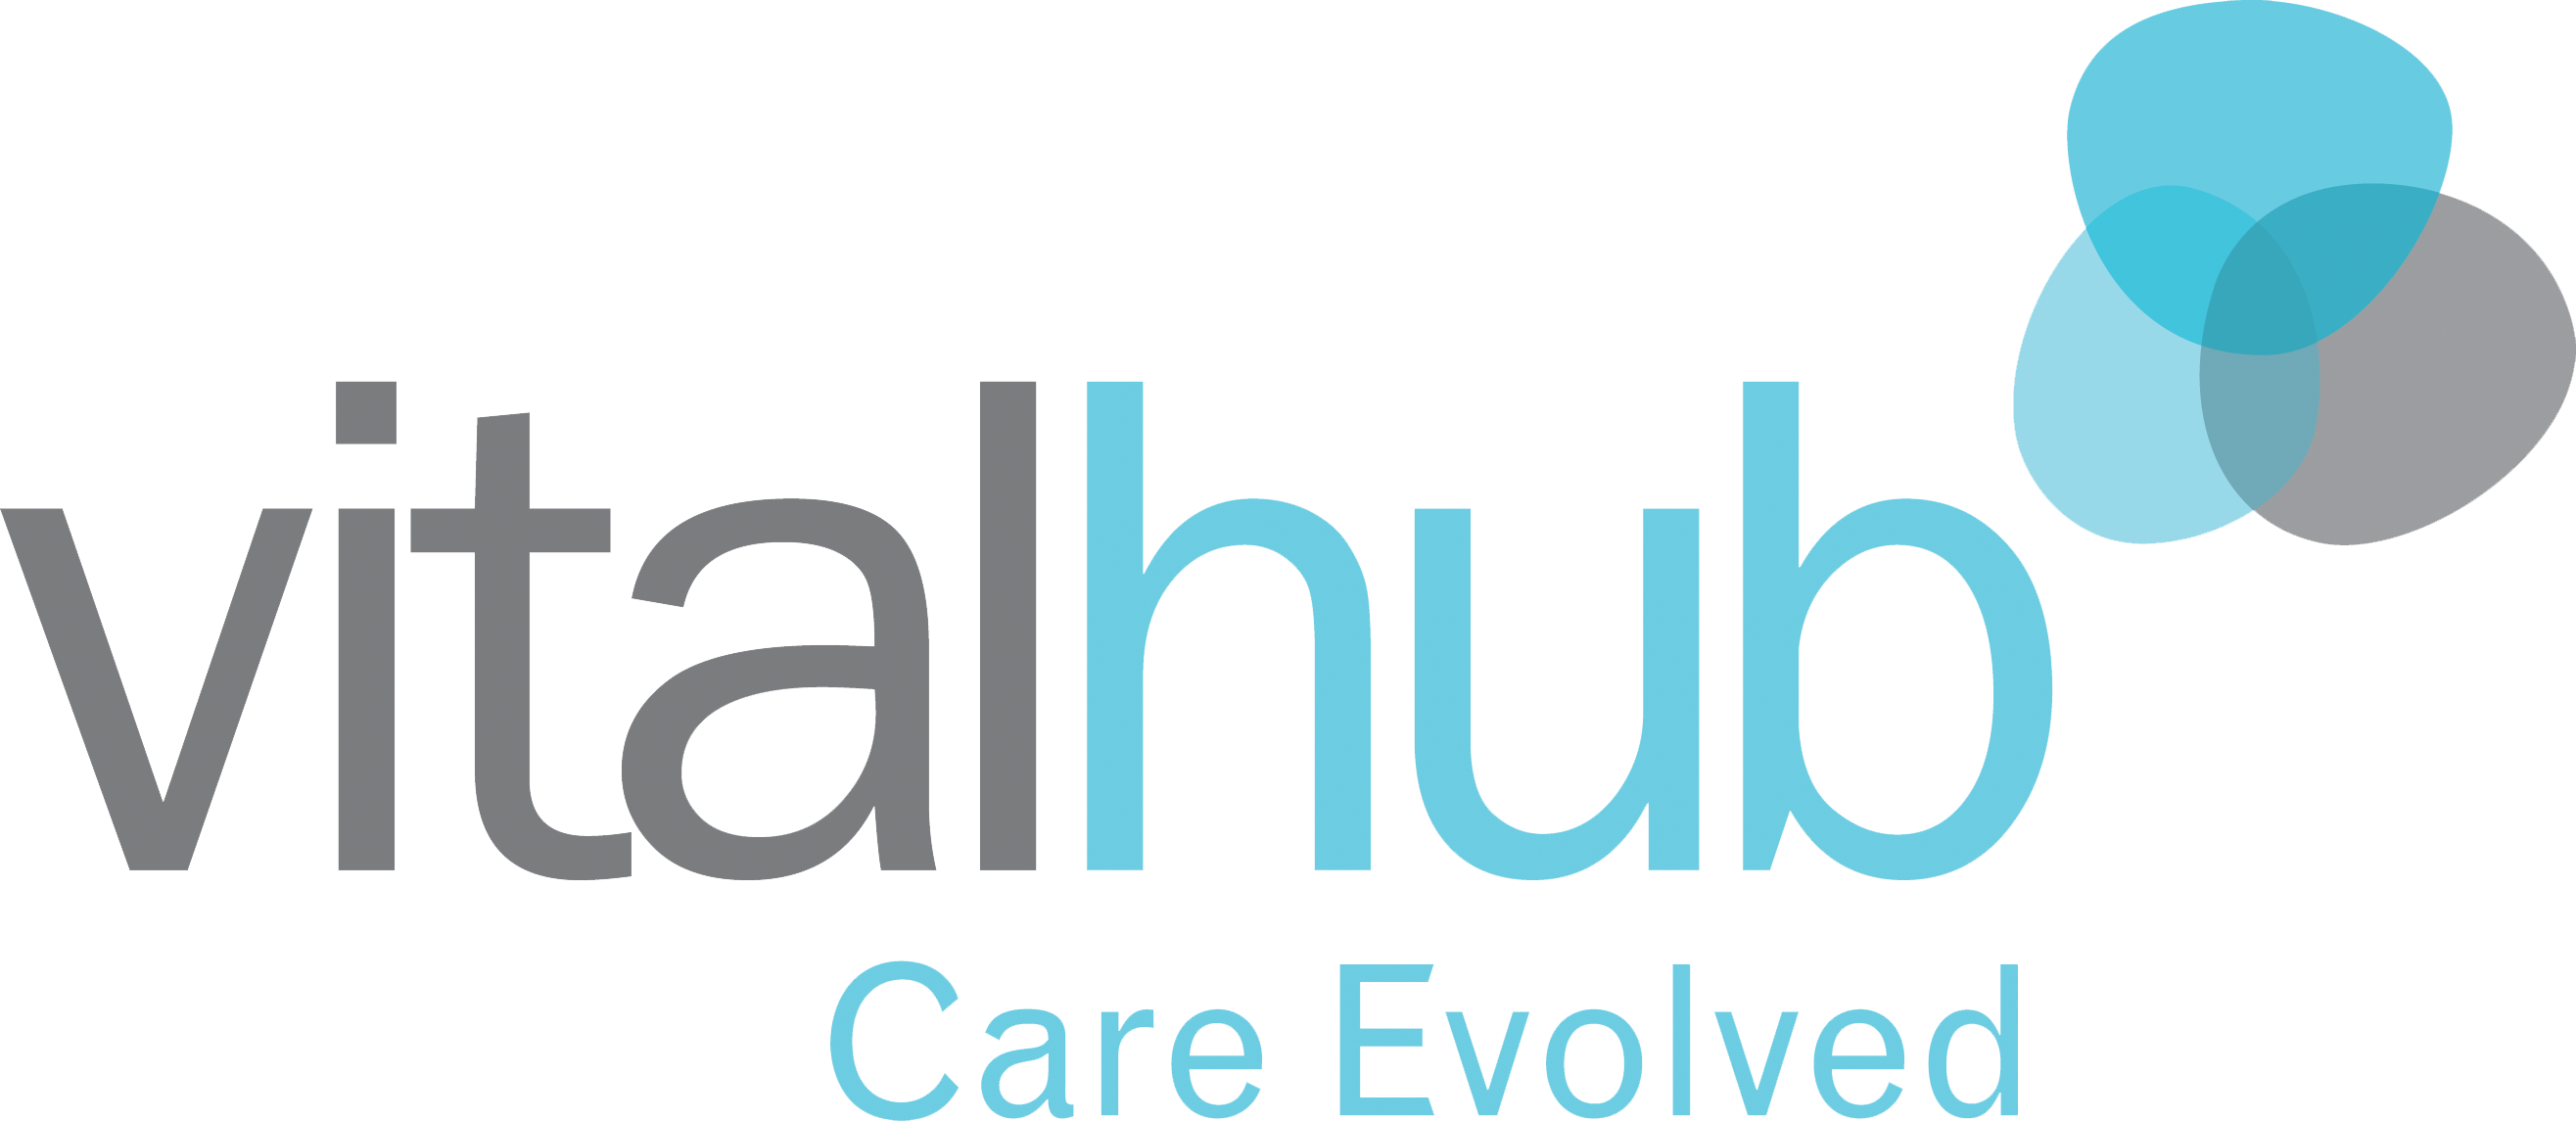 VitalHub Announces Licensing of the MCAP Patient Flow Solution to the South London Mental Health & Community Partnership, UK